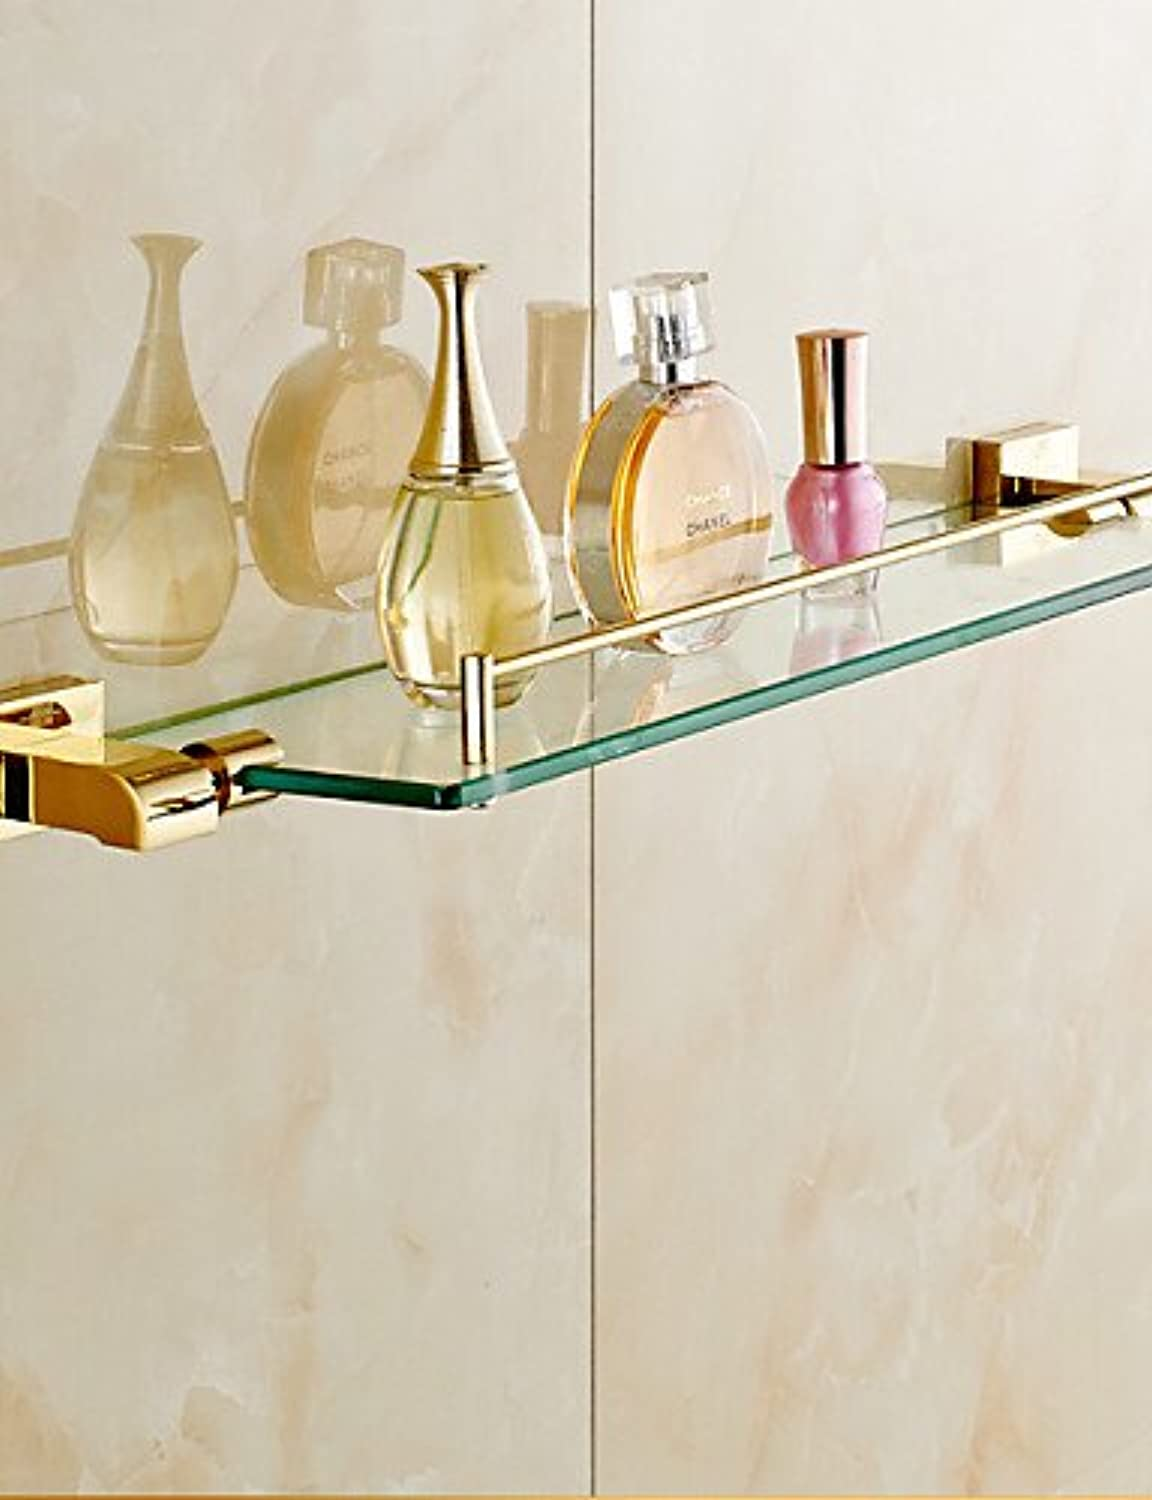 WYMBS Bathroom Shelves,gold Wall Mounted Glass Shelf,Bathroom Accessory, golden